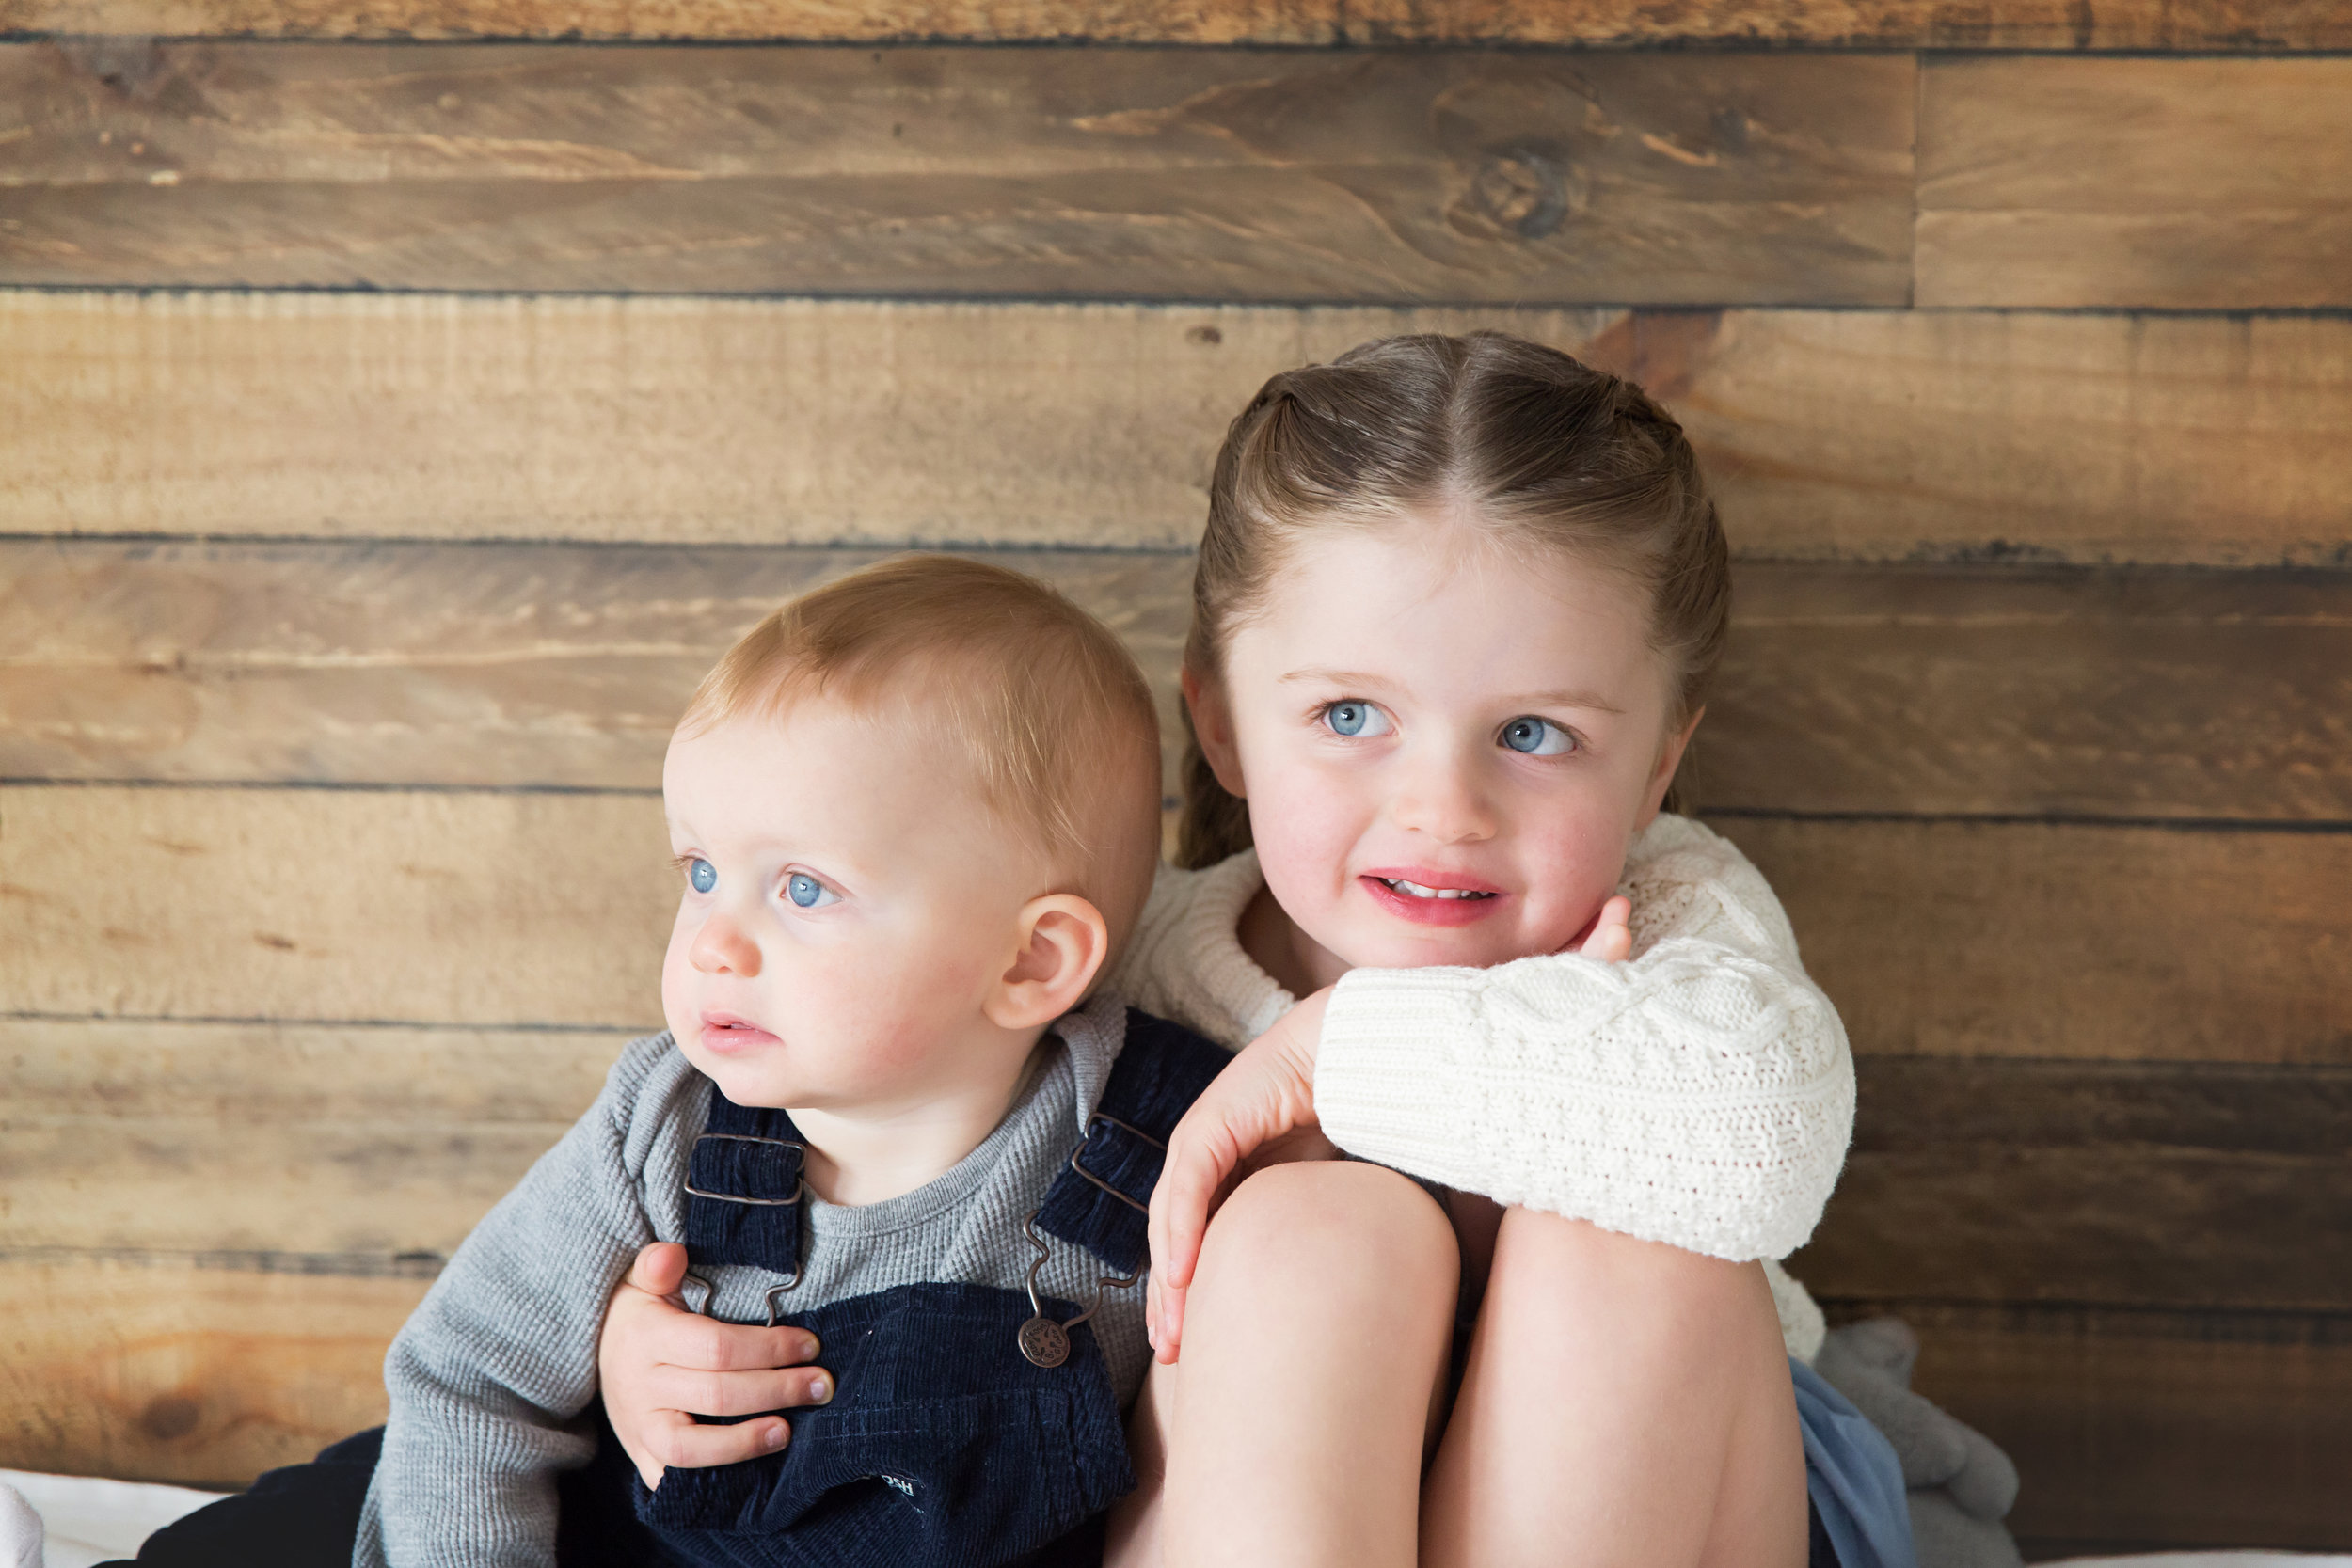 Siblings. Calgary family photographer. Milashka Photography